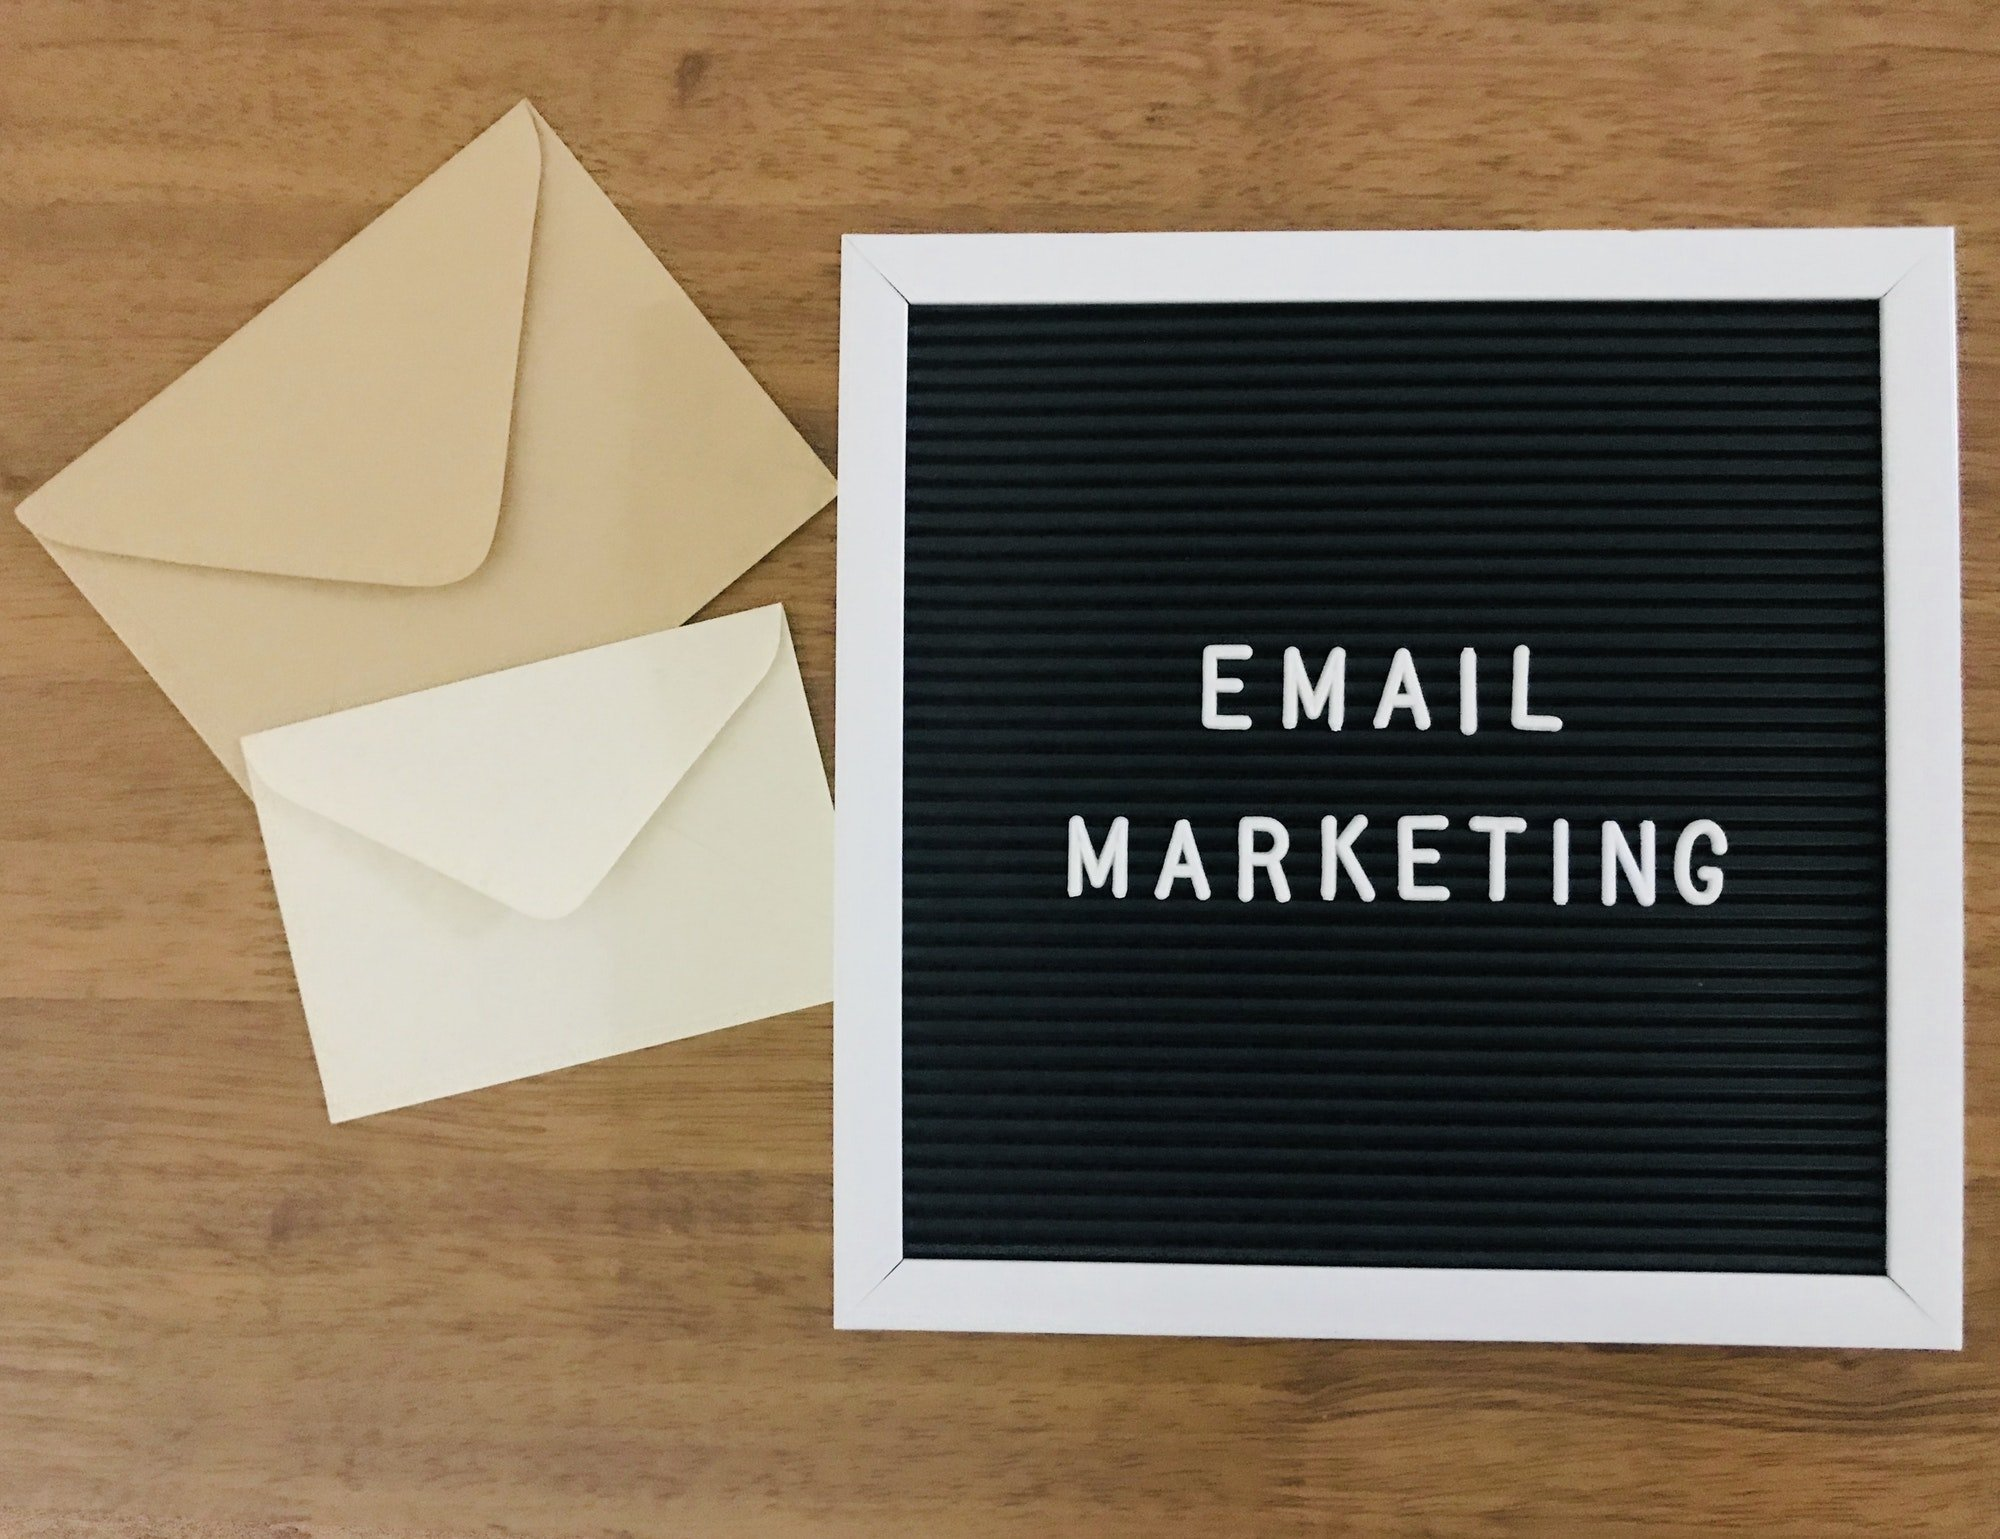 email marketing theme on wooden background